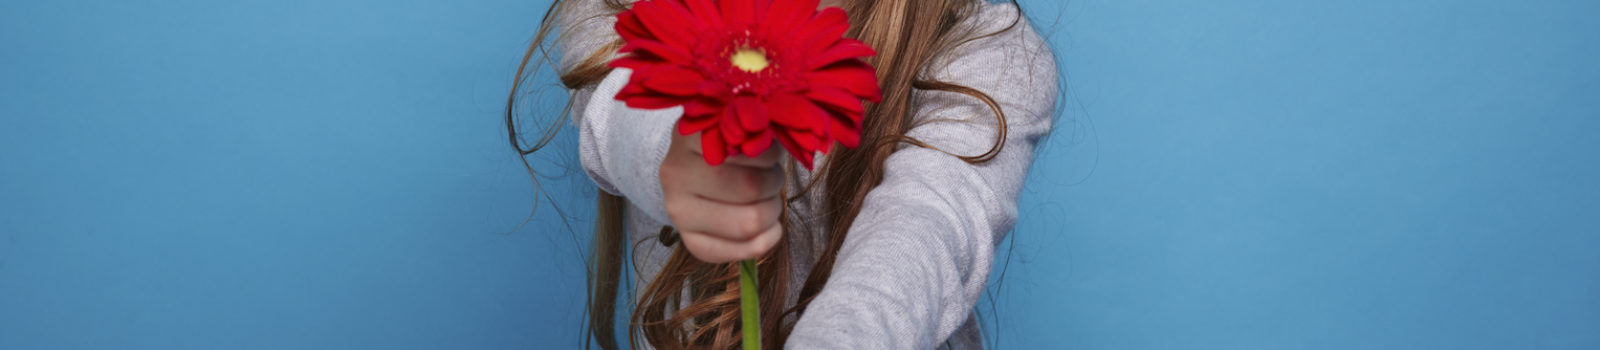 Charming girl giving a gerbera